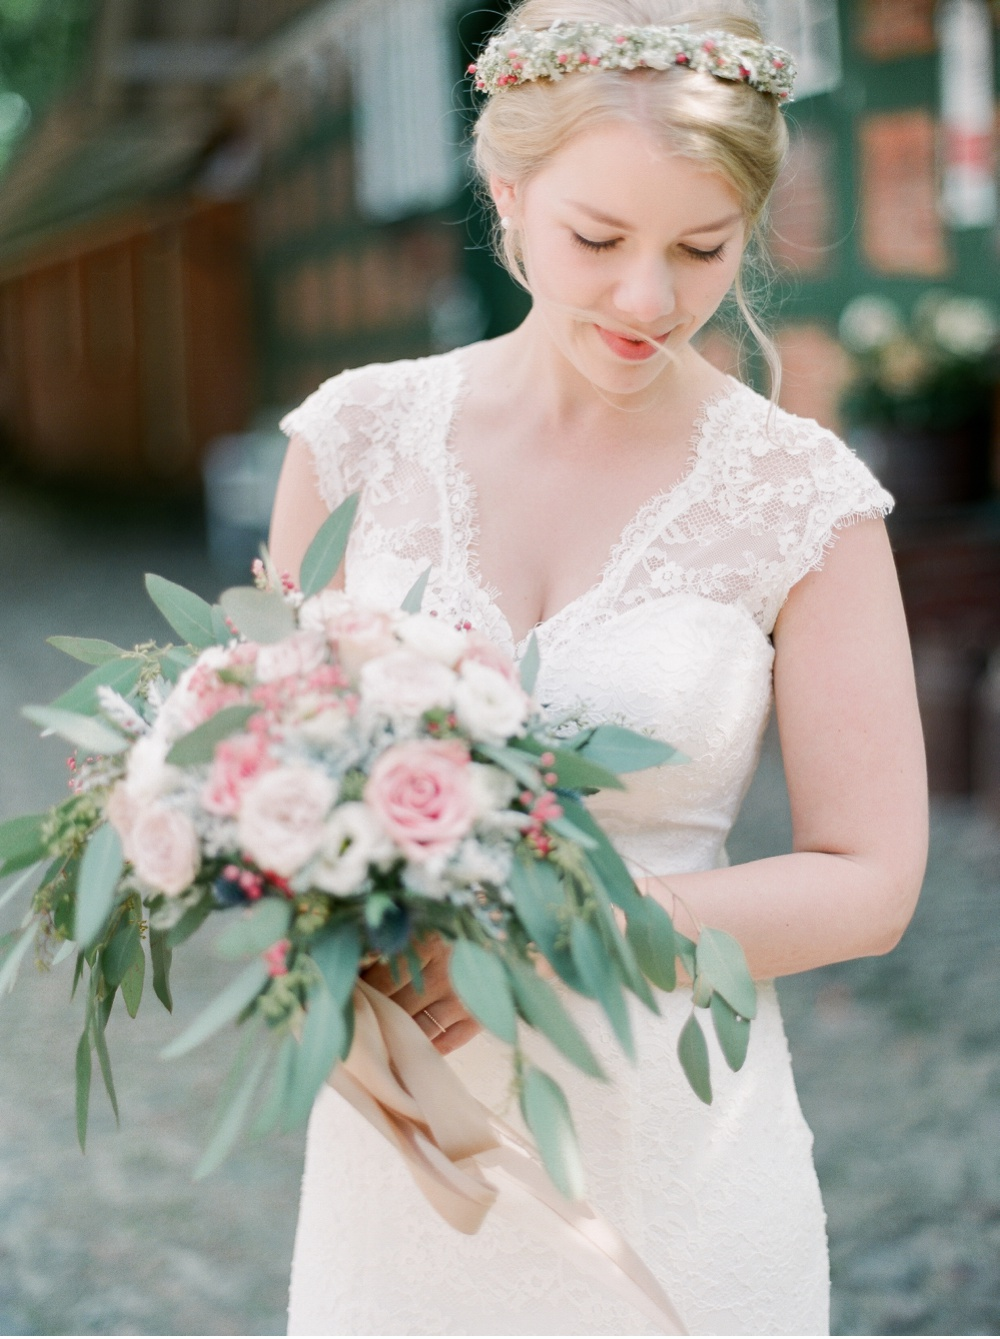 Paris_Provence_Destination_Wedding_Photographer©MadalinaSheldon_0068.jpg